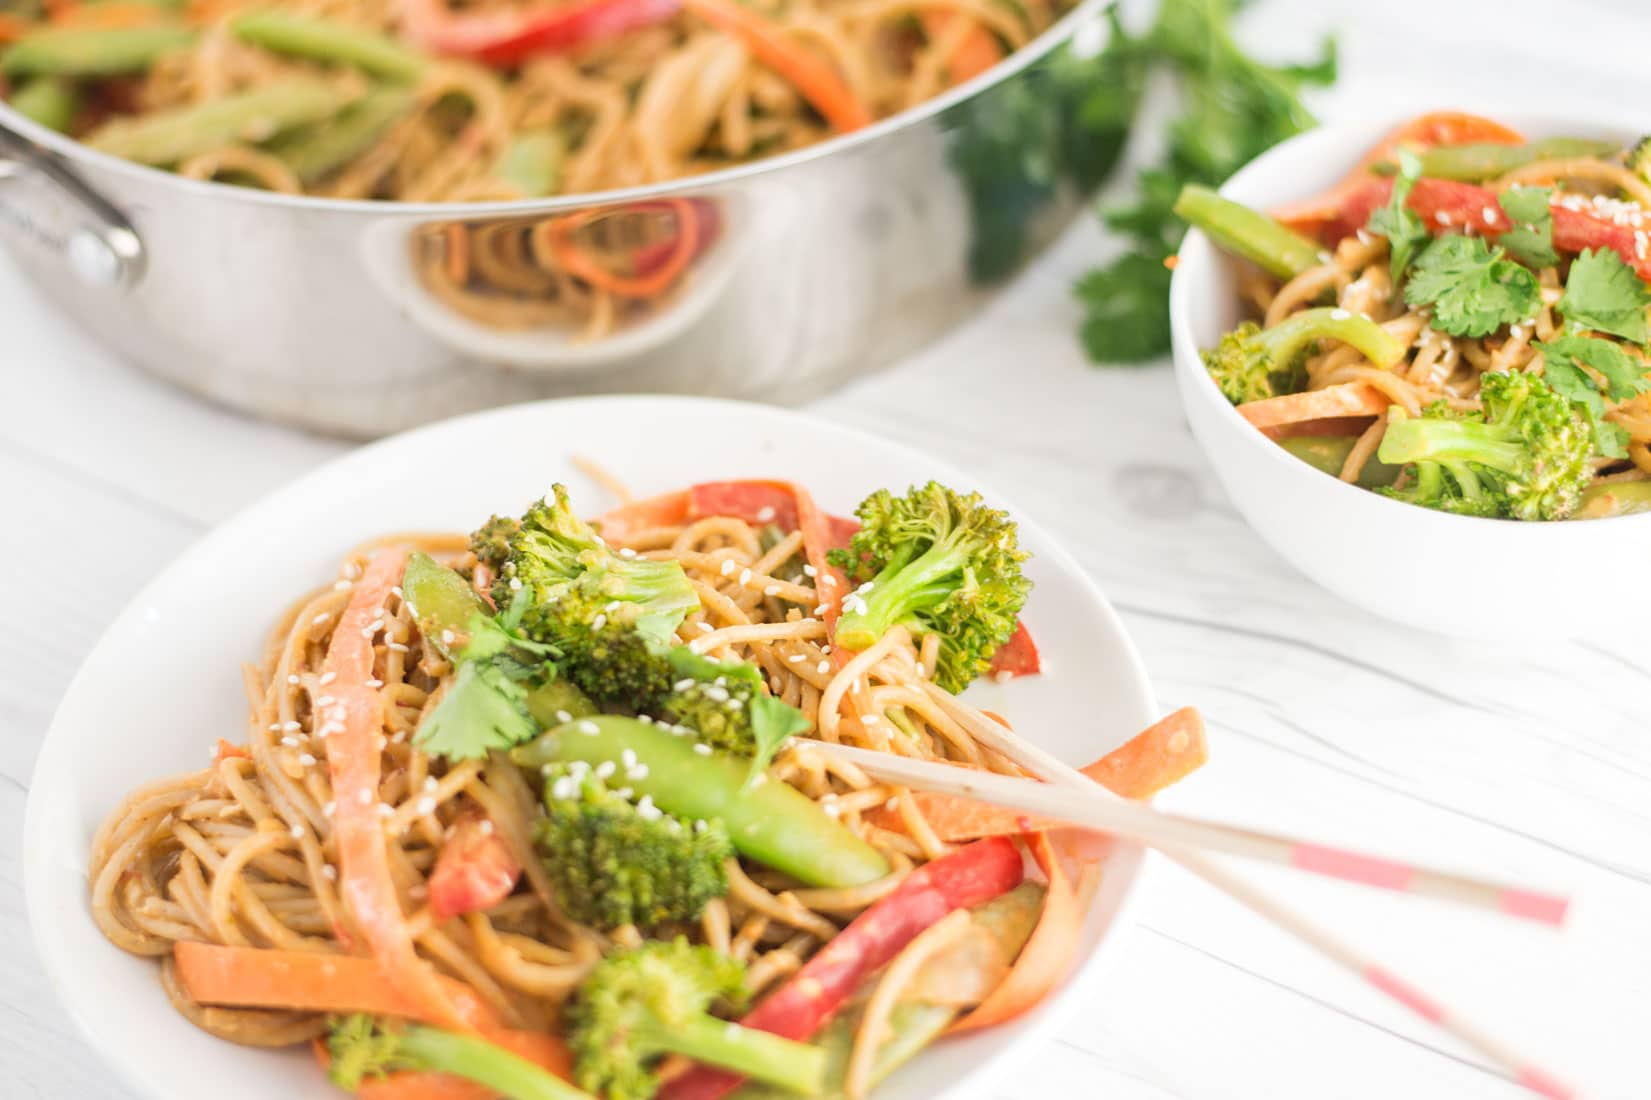 white bowl of peanut noodles with vegetables and chopsticks